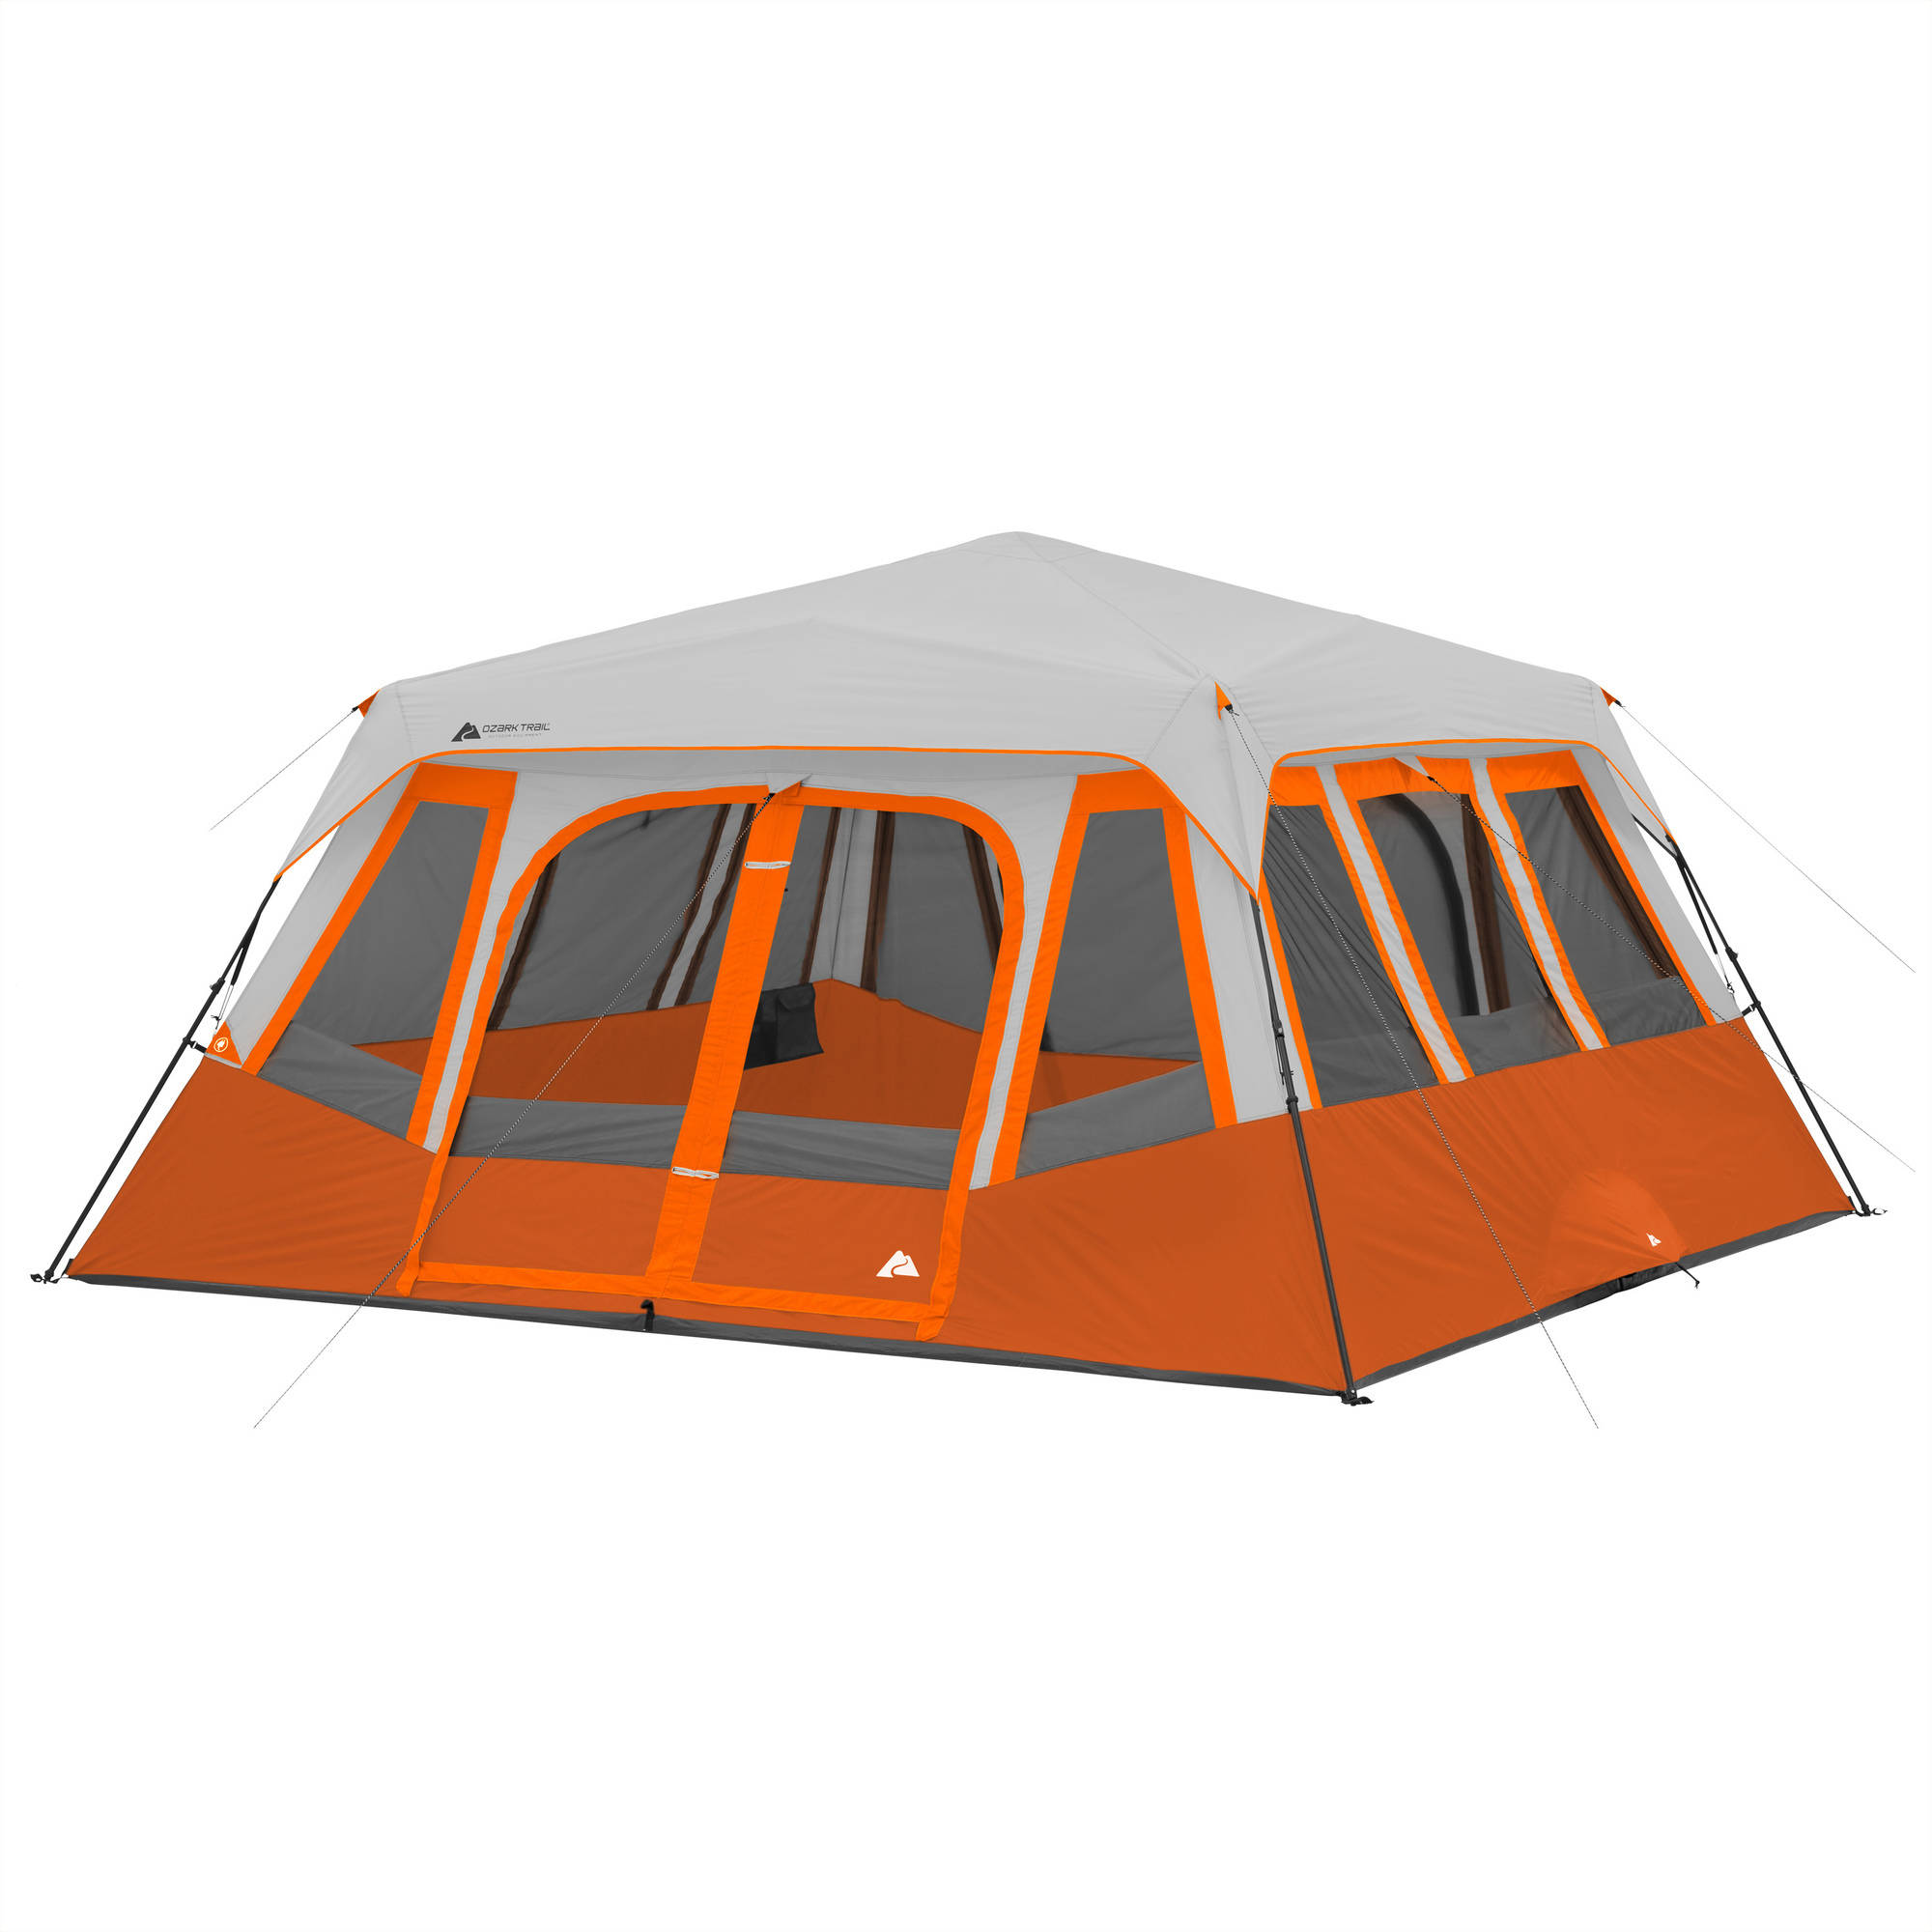 Ozark Trail 14-Person 2-Room Instant Cabin Tent by